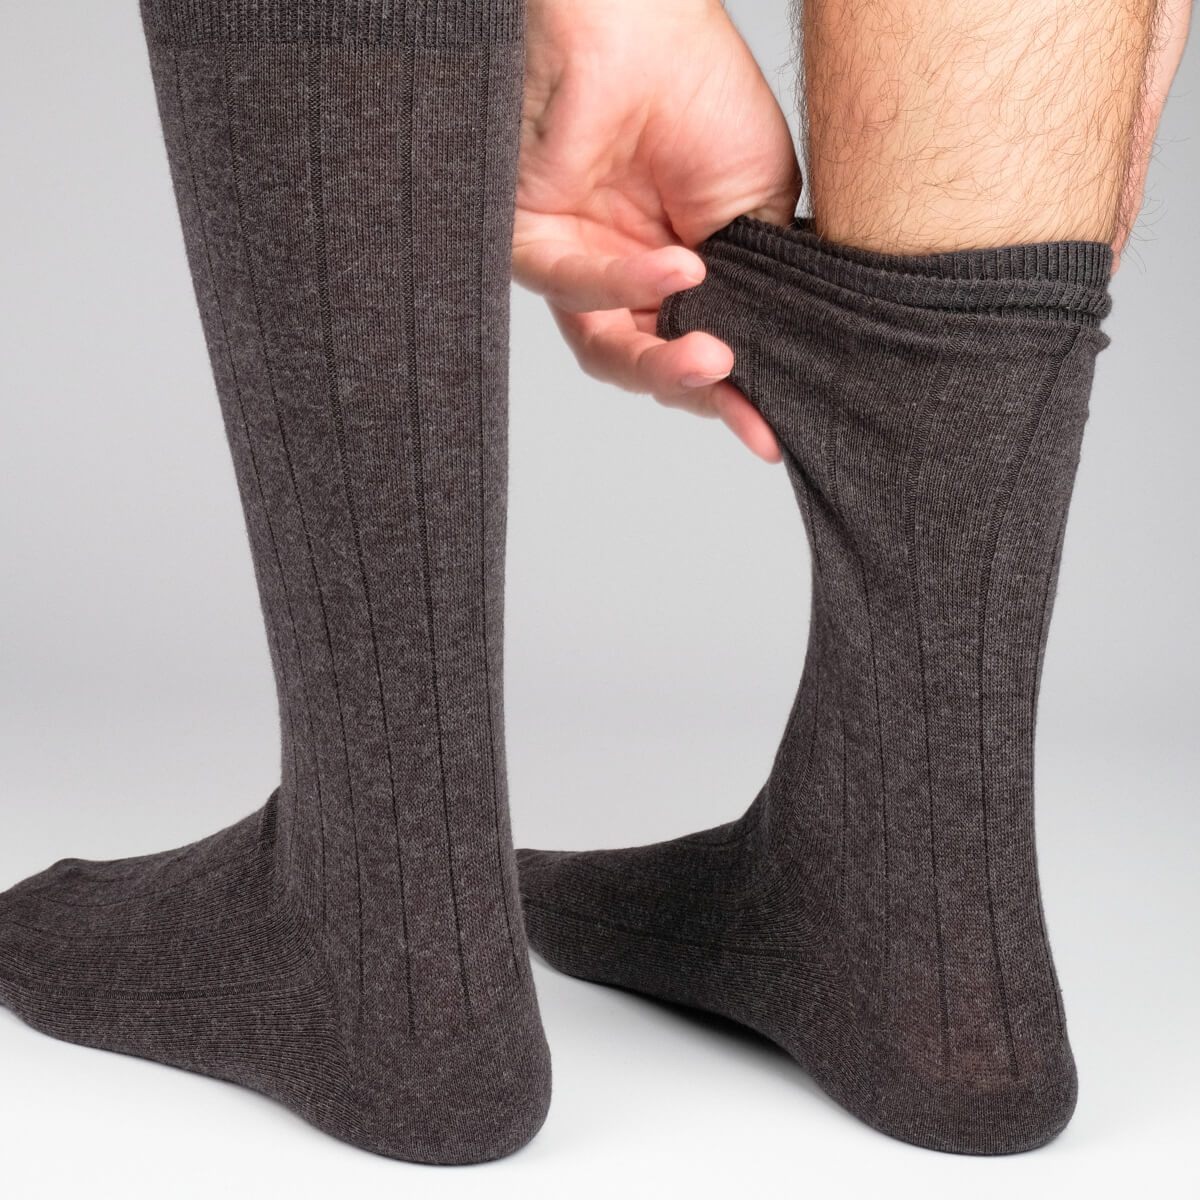 The Classic Rib - Dark Grey - Mens Socks | Etiquette Clothiers Global Official